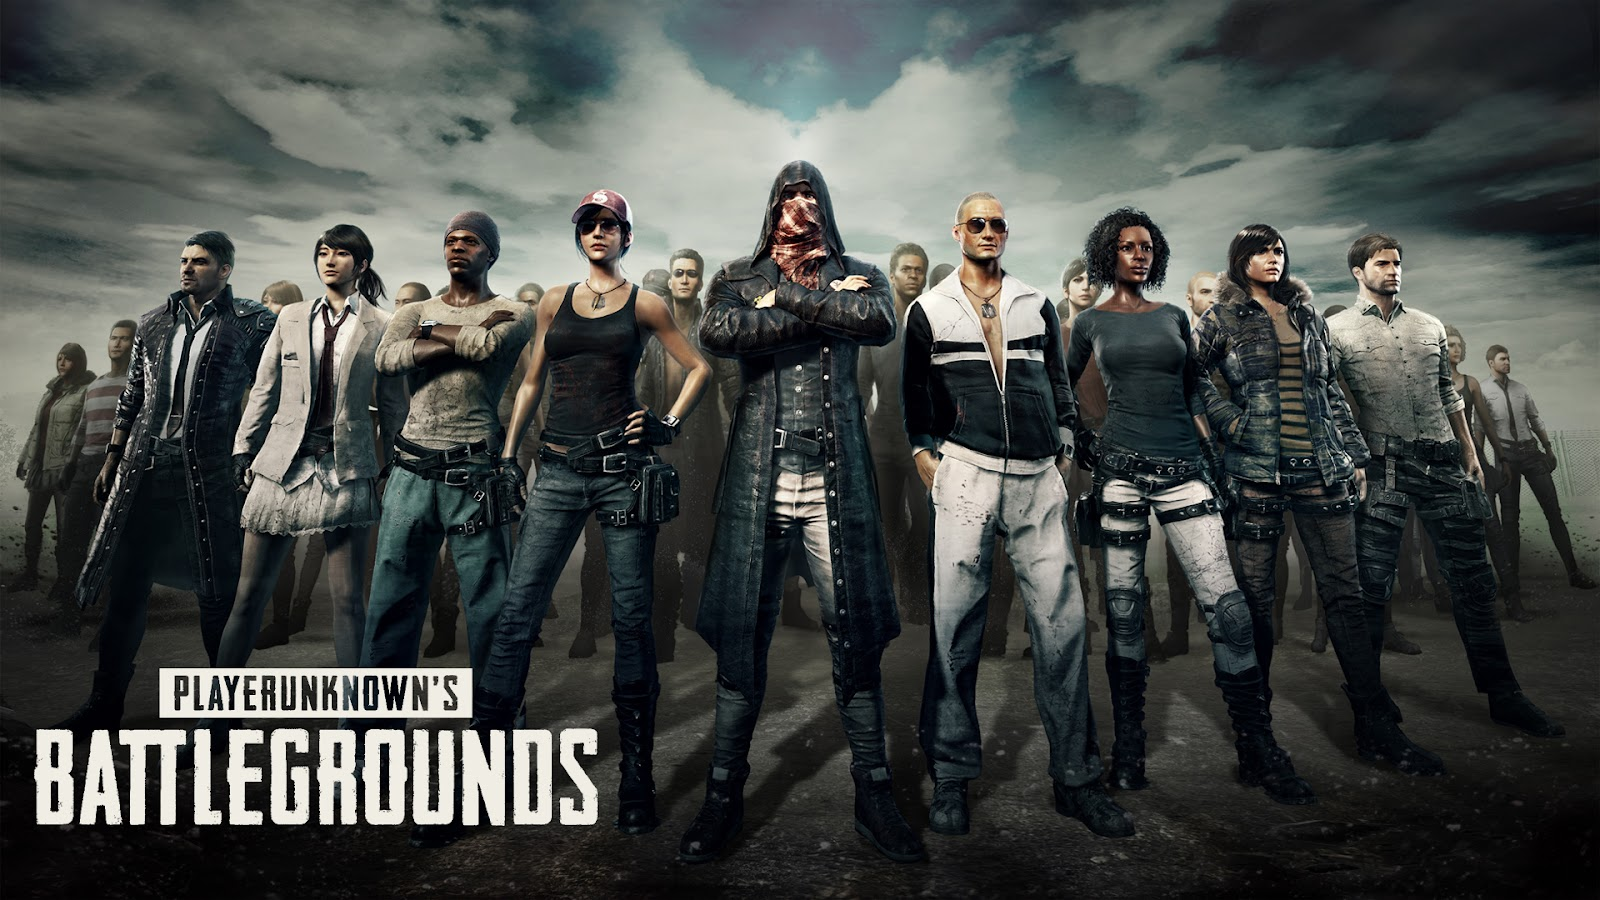 playerunknowns-battlegrounds_BANNER.jpg